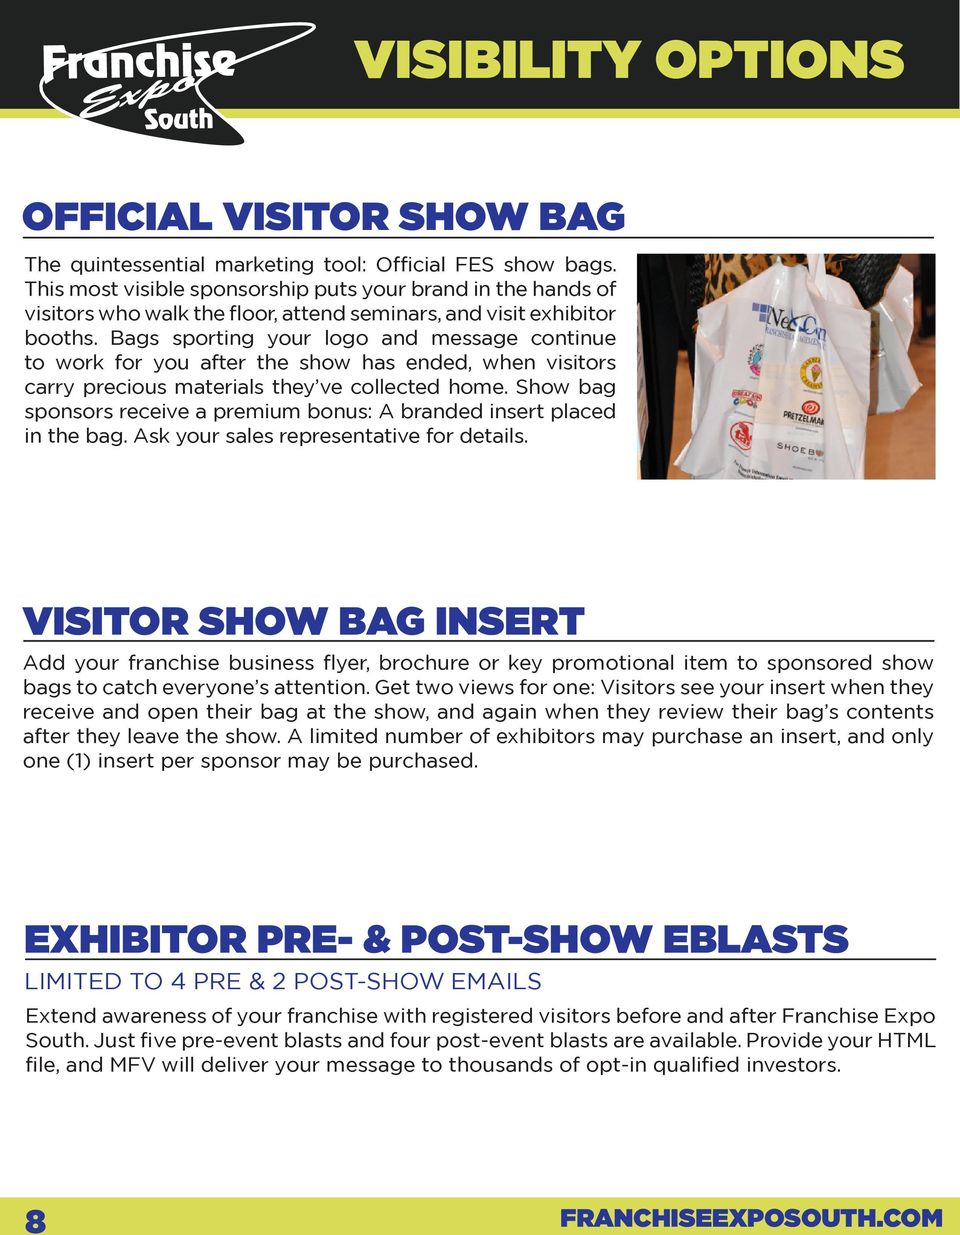 Bags sporting your logo and message continue to work for you after the show has ended, when visitors carry precious materials they ve collected home.